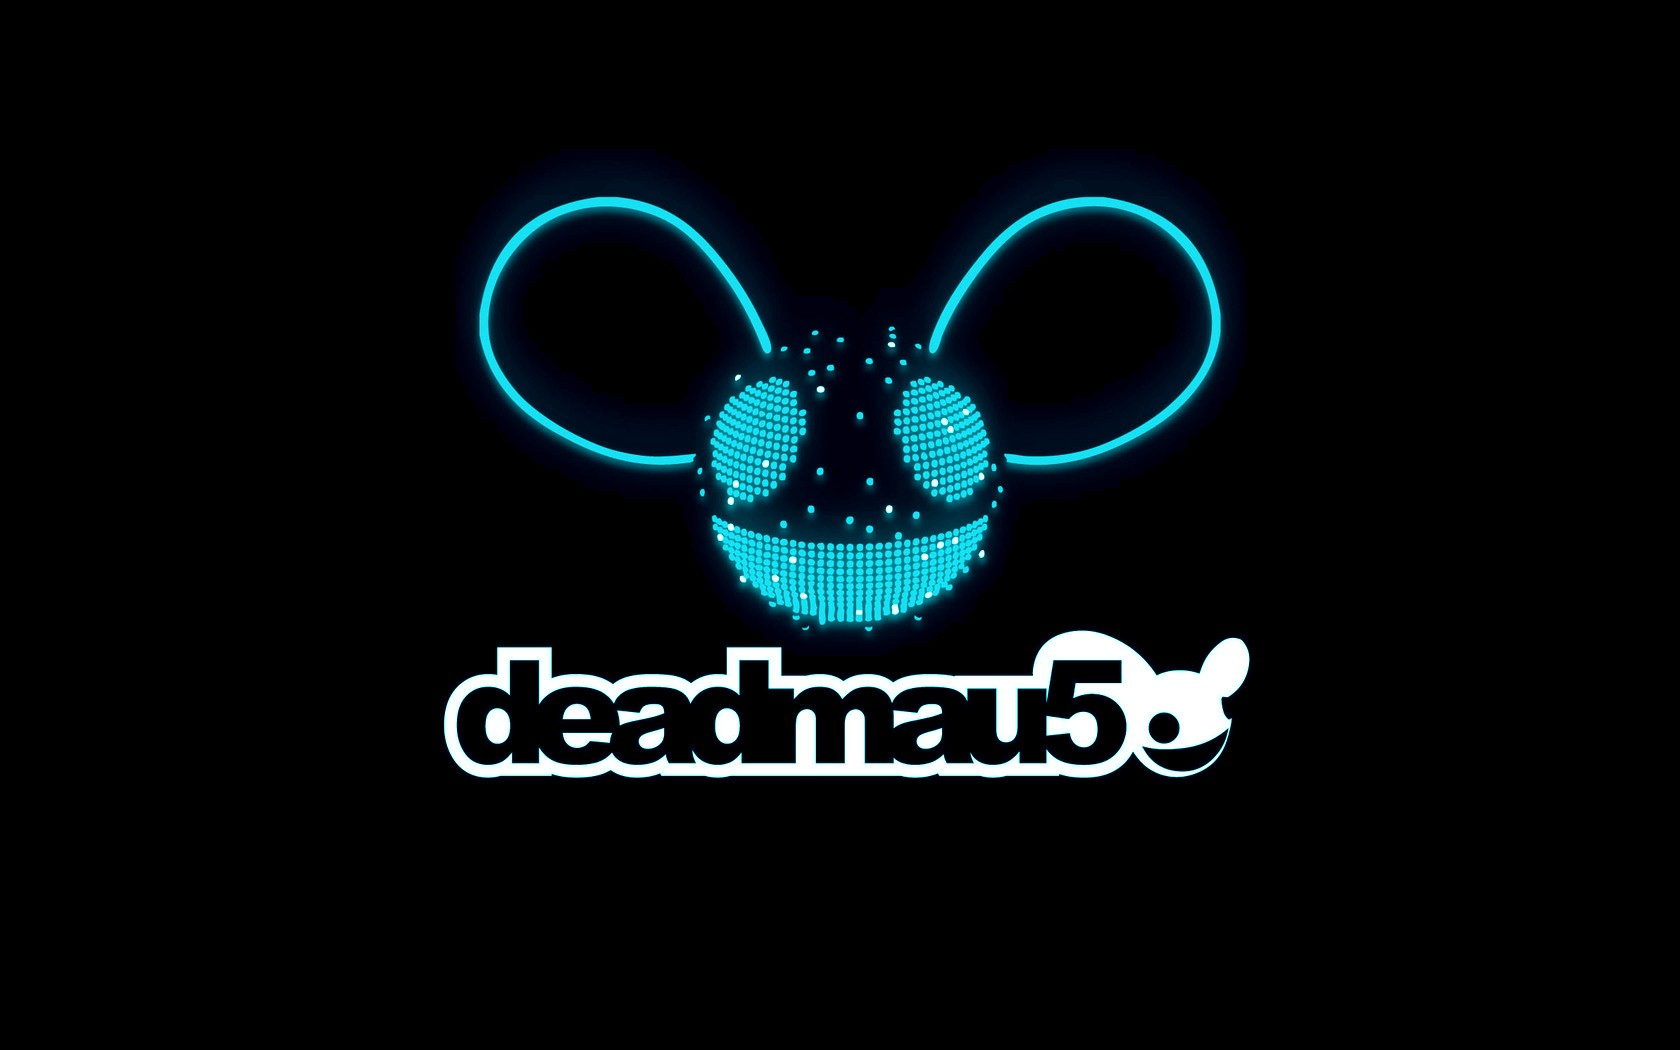 Deadmau5 - Live at XS Nightclub (Las Vegas) - 25-JUL-2014 - #1 Source for Livesets, Dj Sets and Live Mixes Download - Global-Sets.com